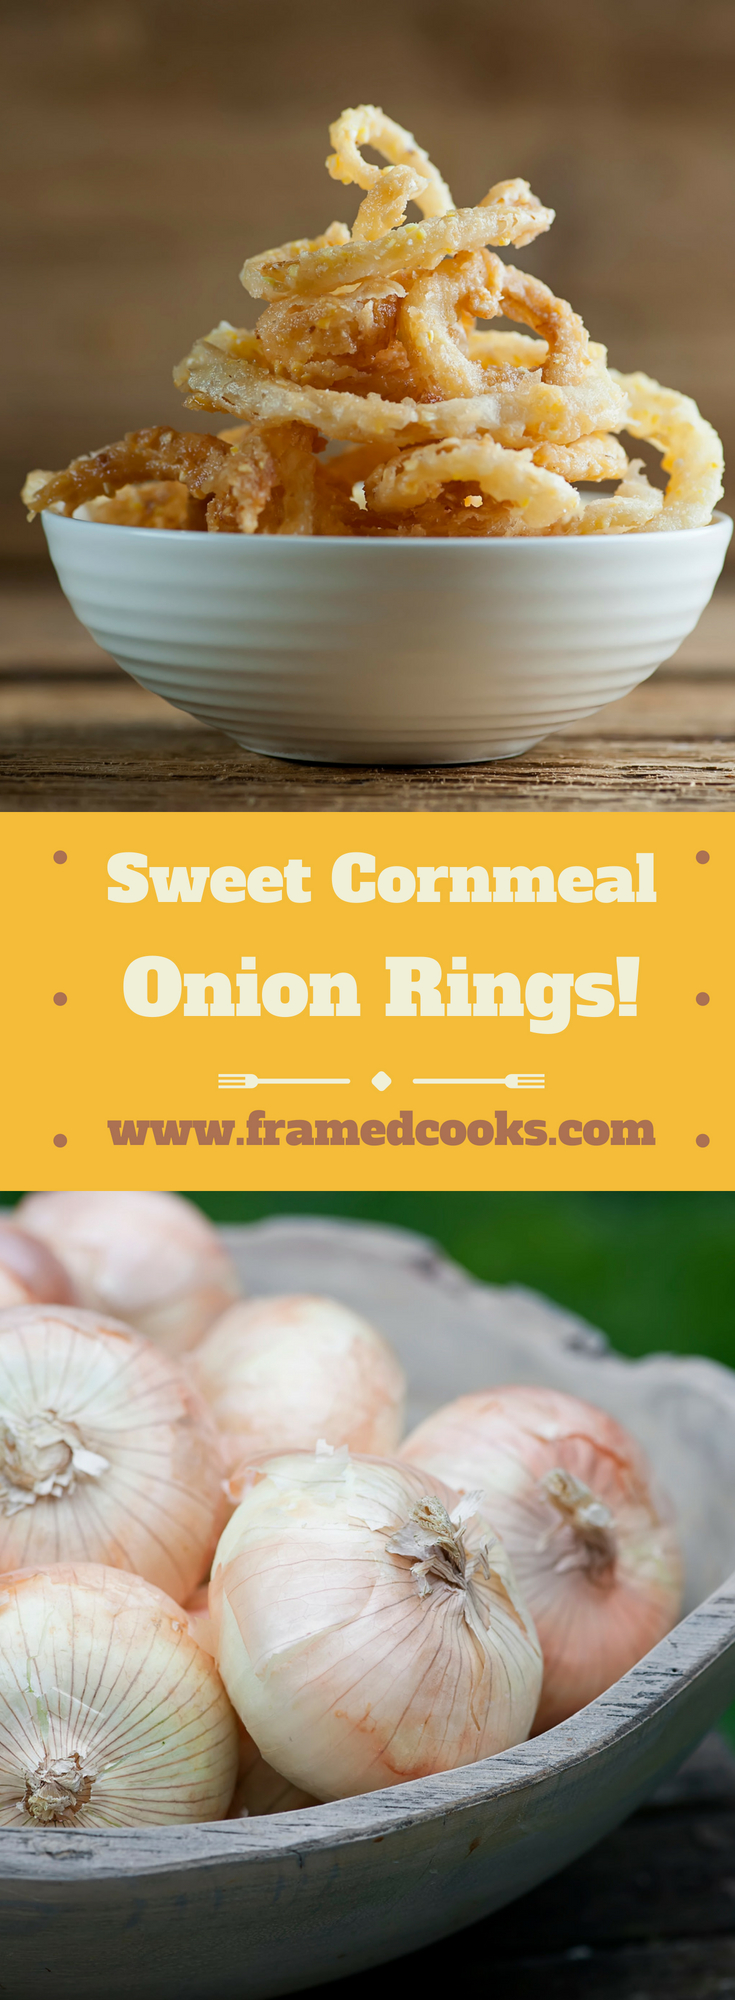 This easy recipe for sweet cornmeal onion rings uses slender slices of Vidalia onions in a cornmeal coating for the lightest and most flavorful onion rings ever.  Bet you can't eat just one!